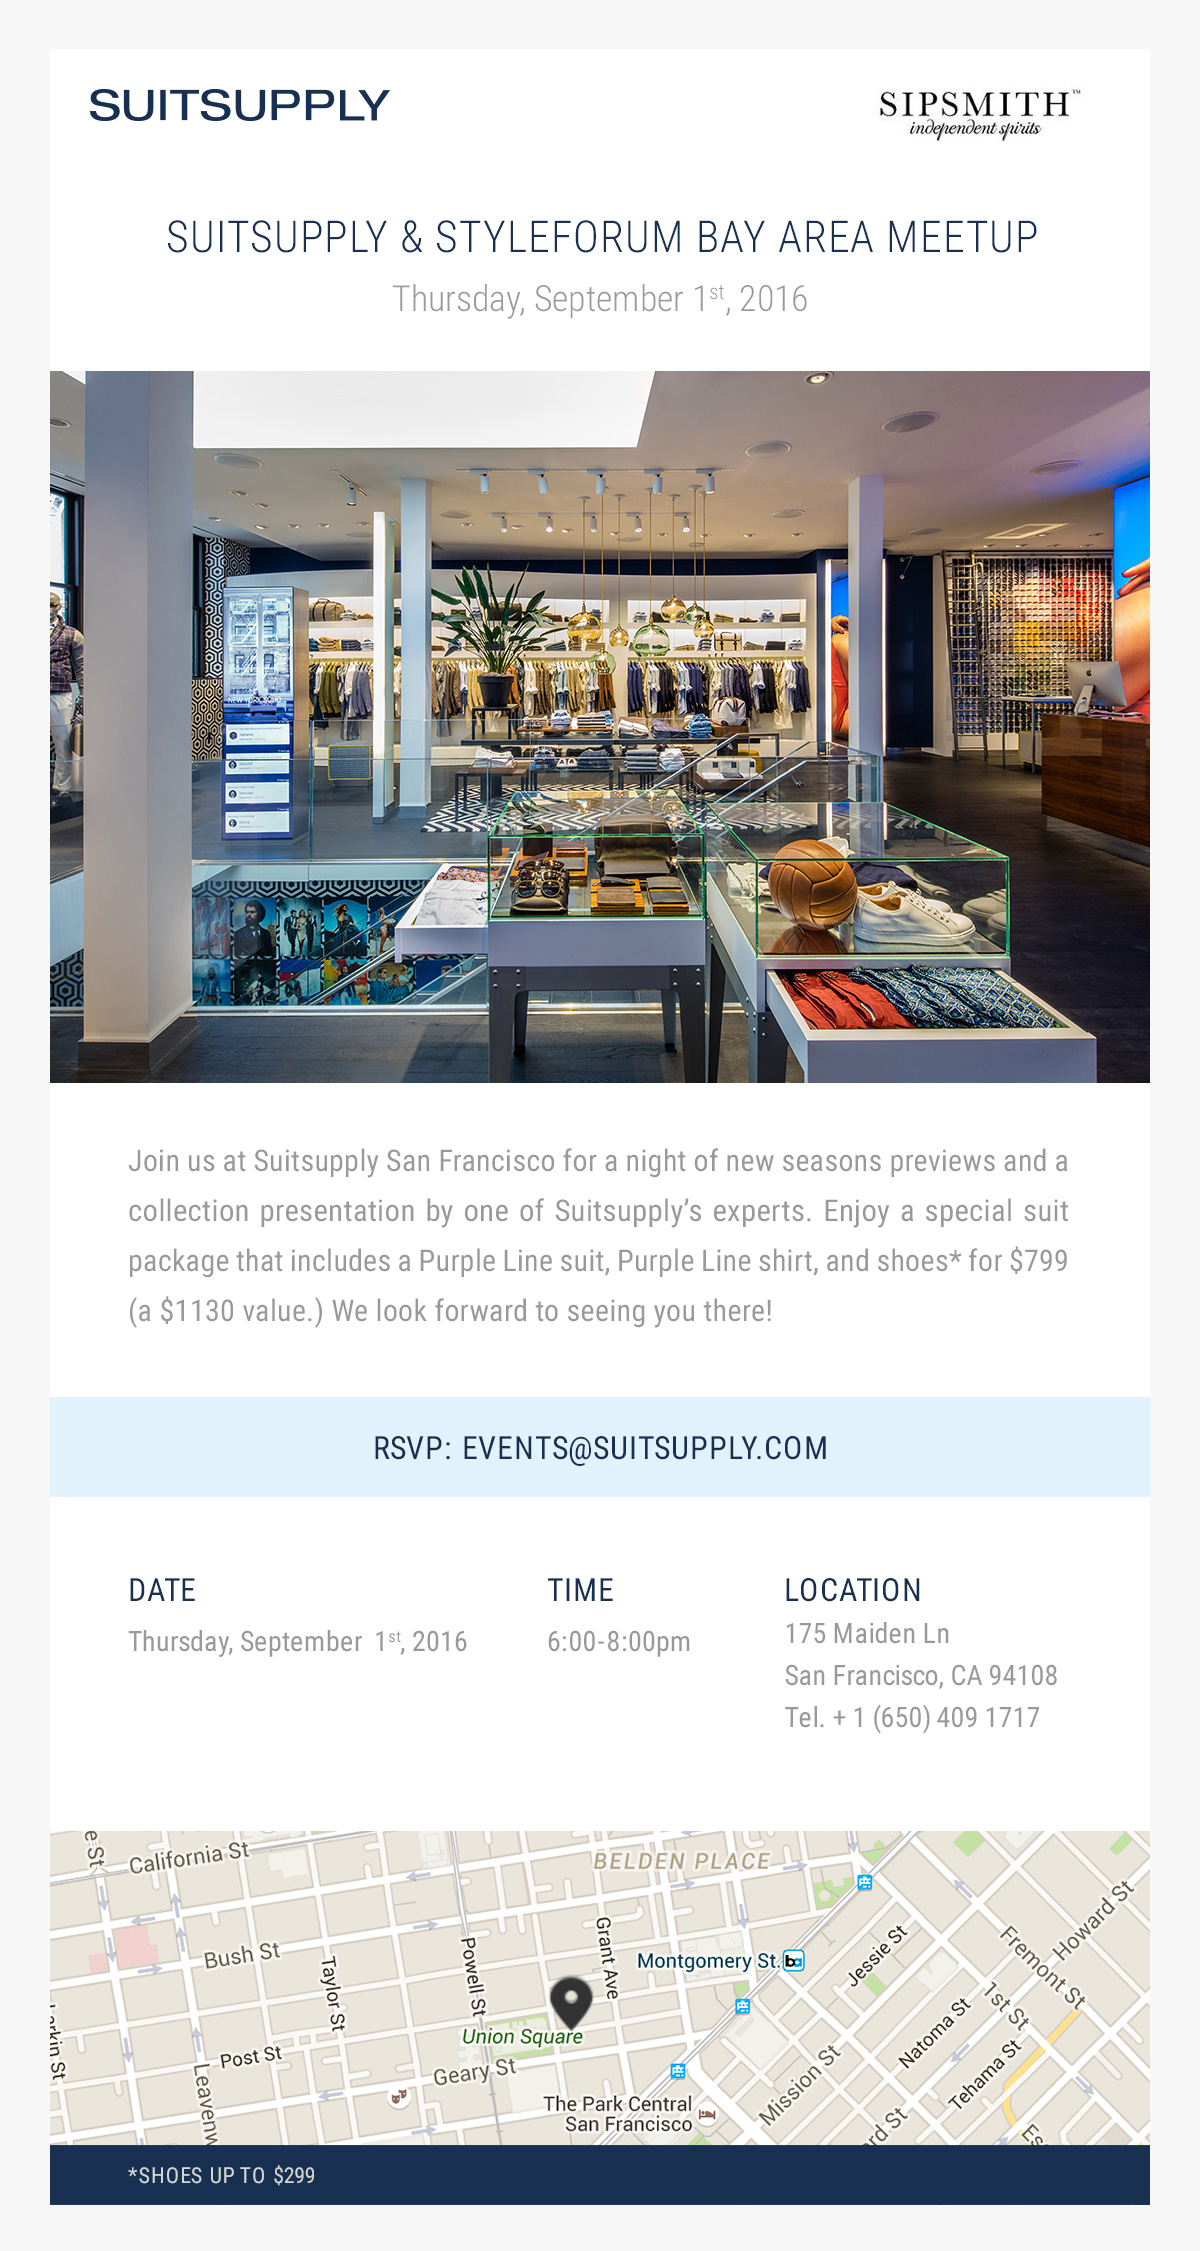 GusW's photos in SF, San Francisco, Bay Area STYLEFORUM MEETUP - Hosted by SUITSUPPLY Sept 1, 6-8pm